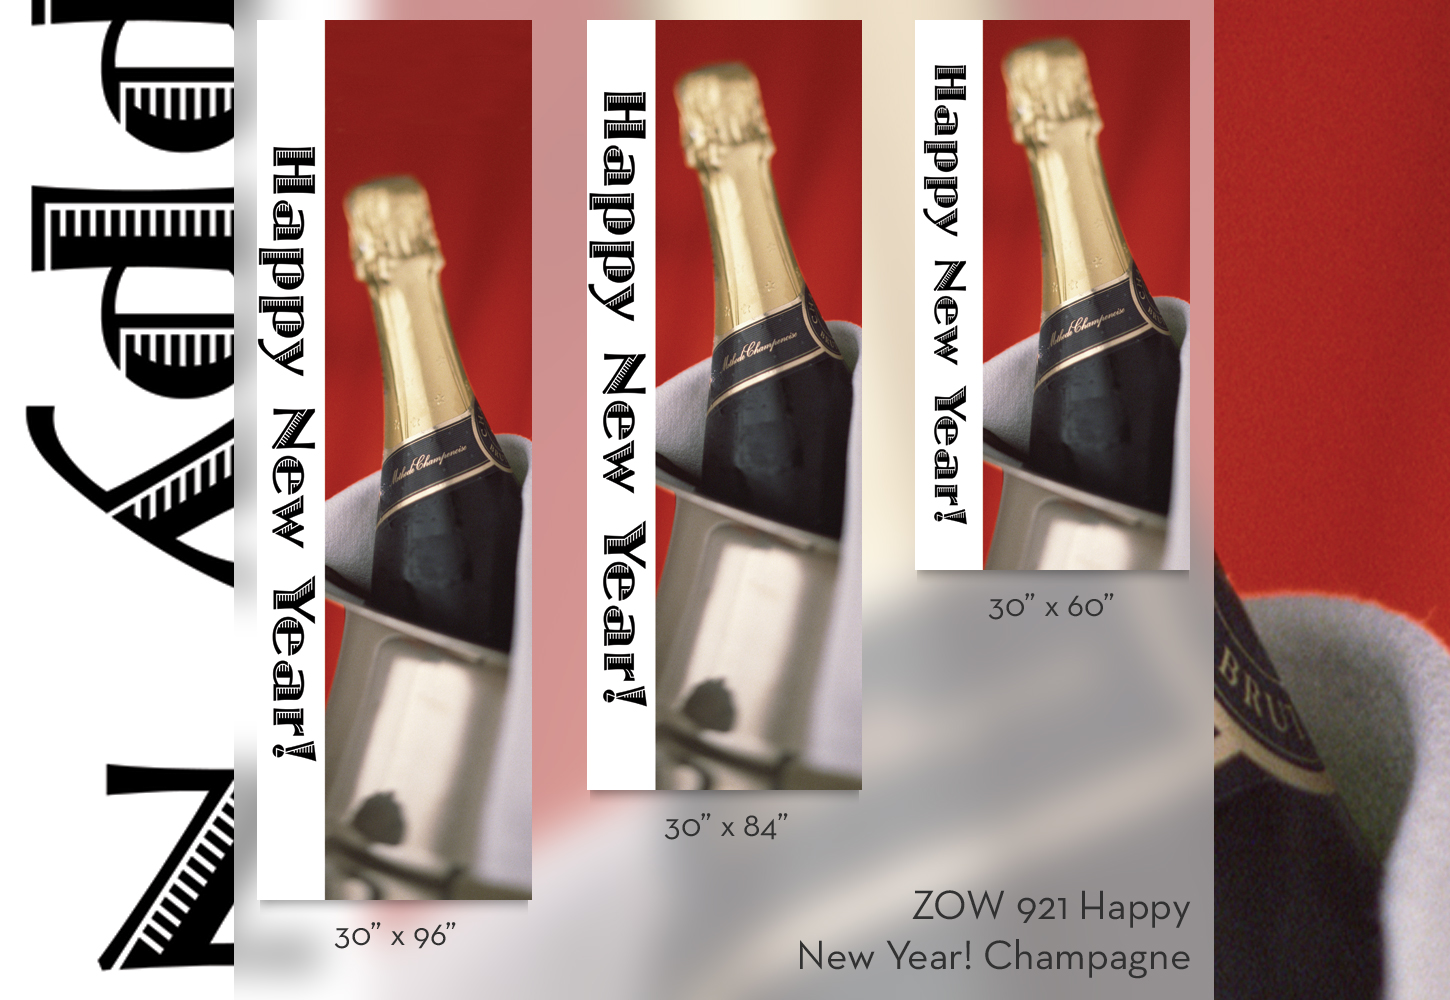 ZOW 921 Happy New Year Champagne